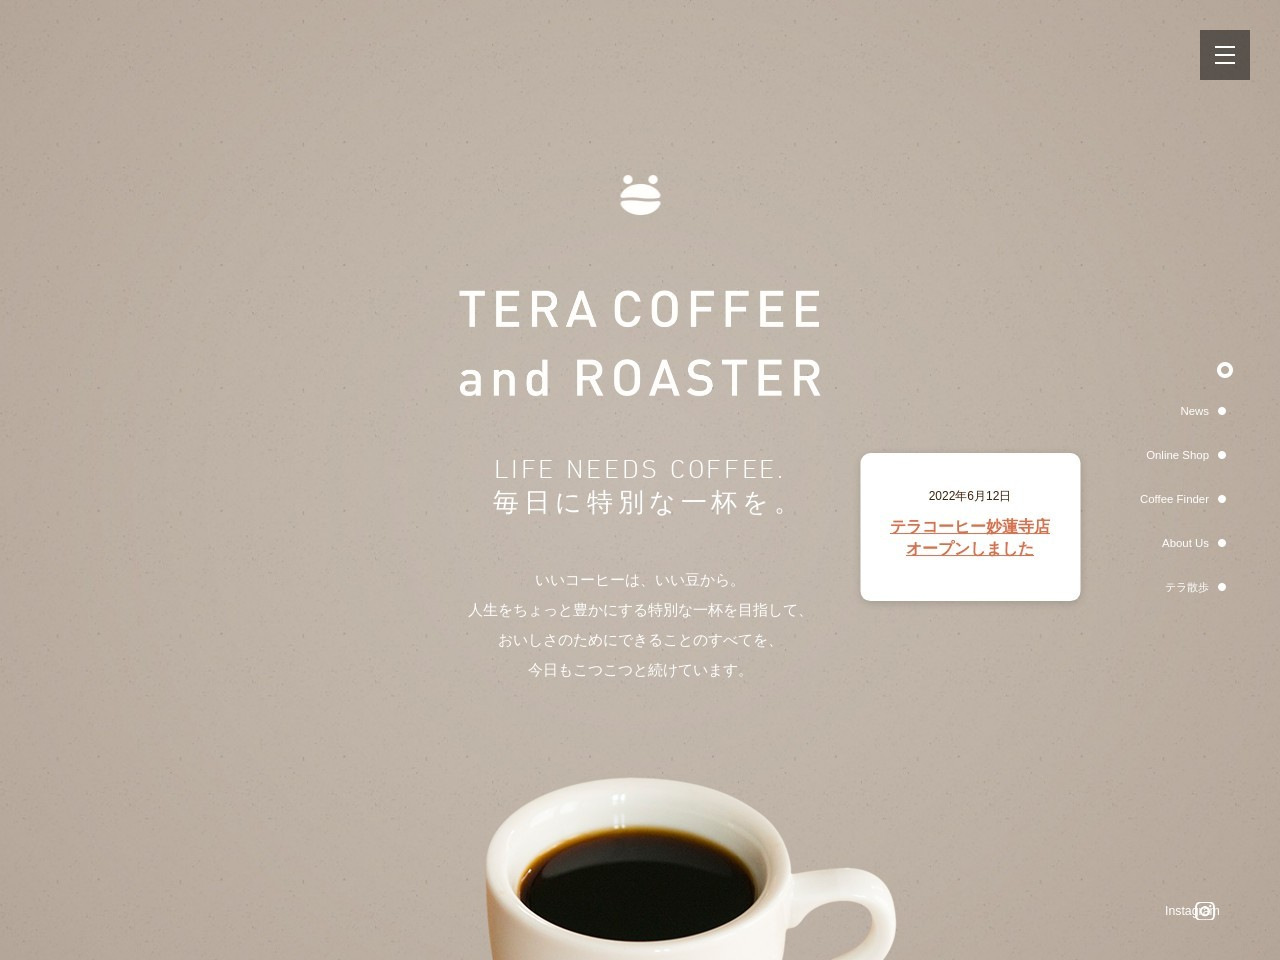 TERA COFFEE and ROASTER